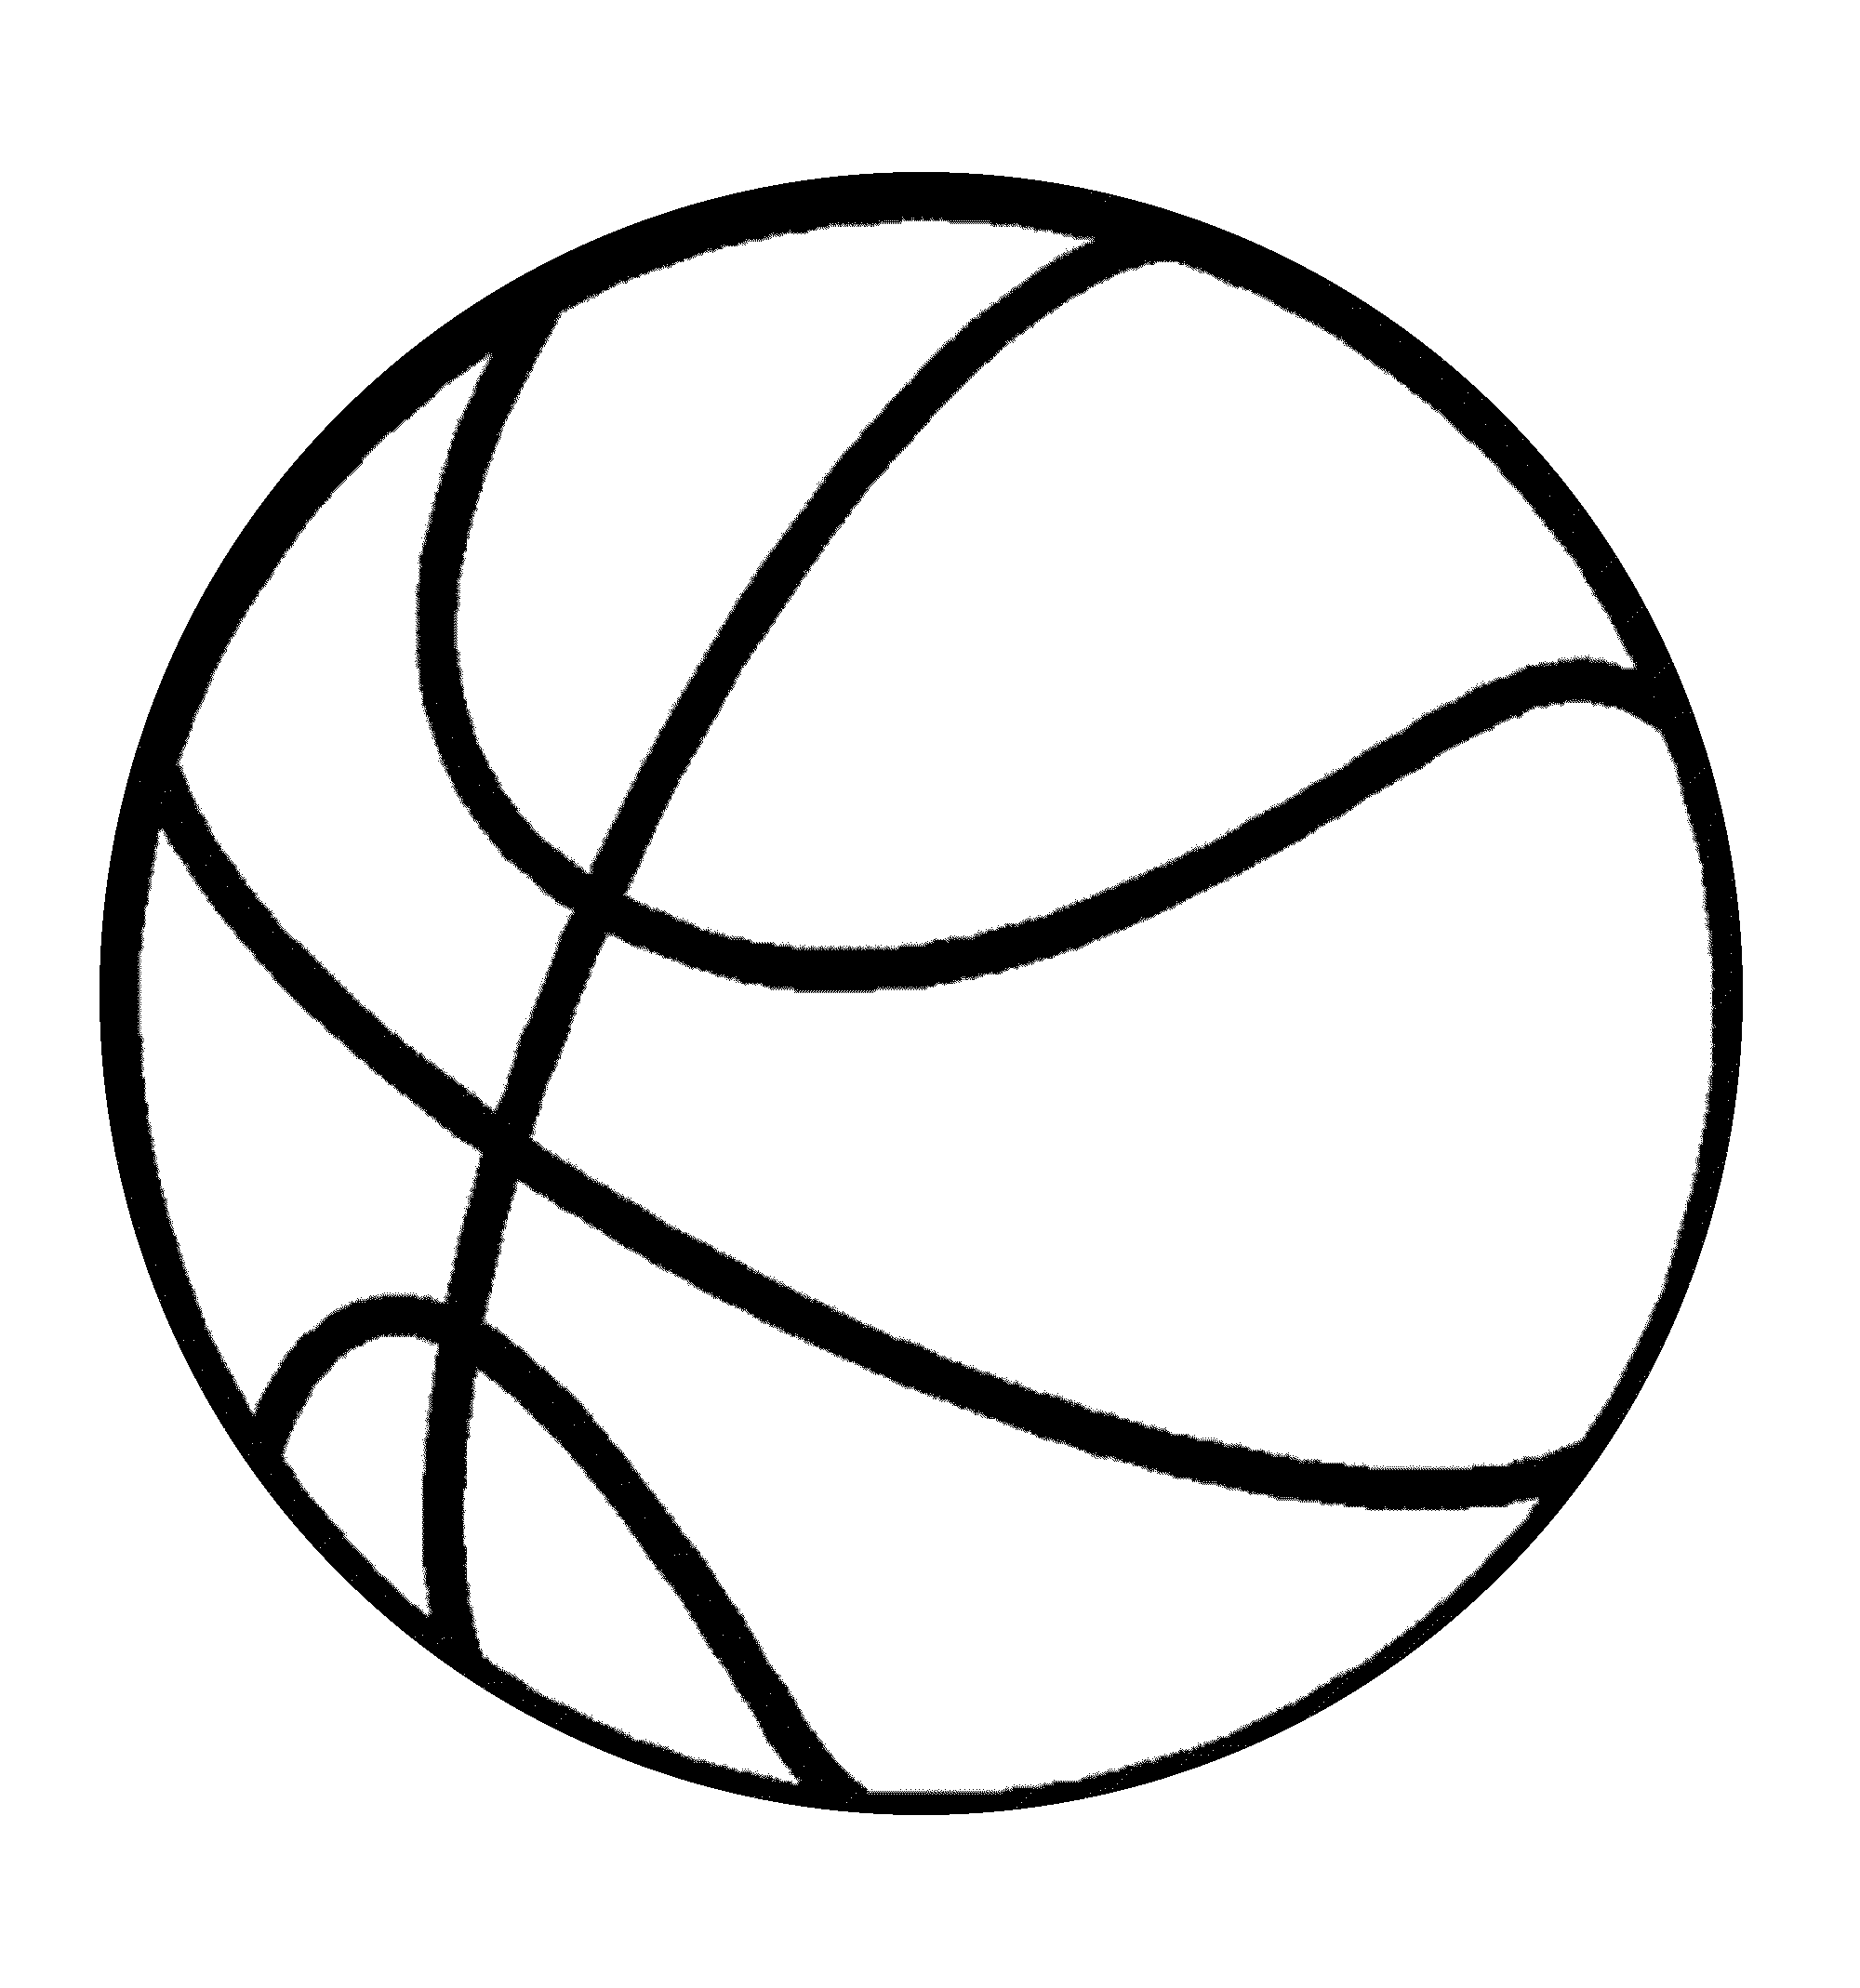 colouring picture of a ball golf ball pencil coloring pages a colouring picture of ball